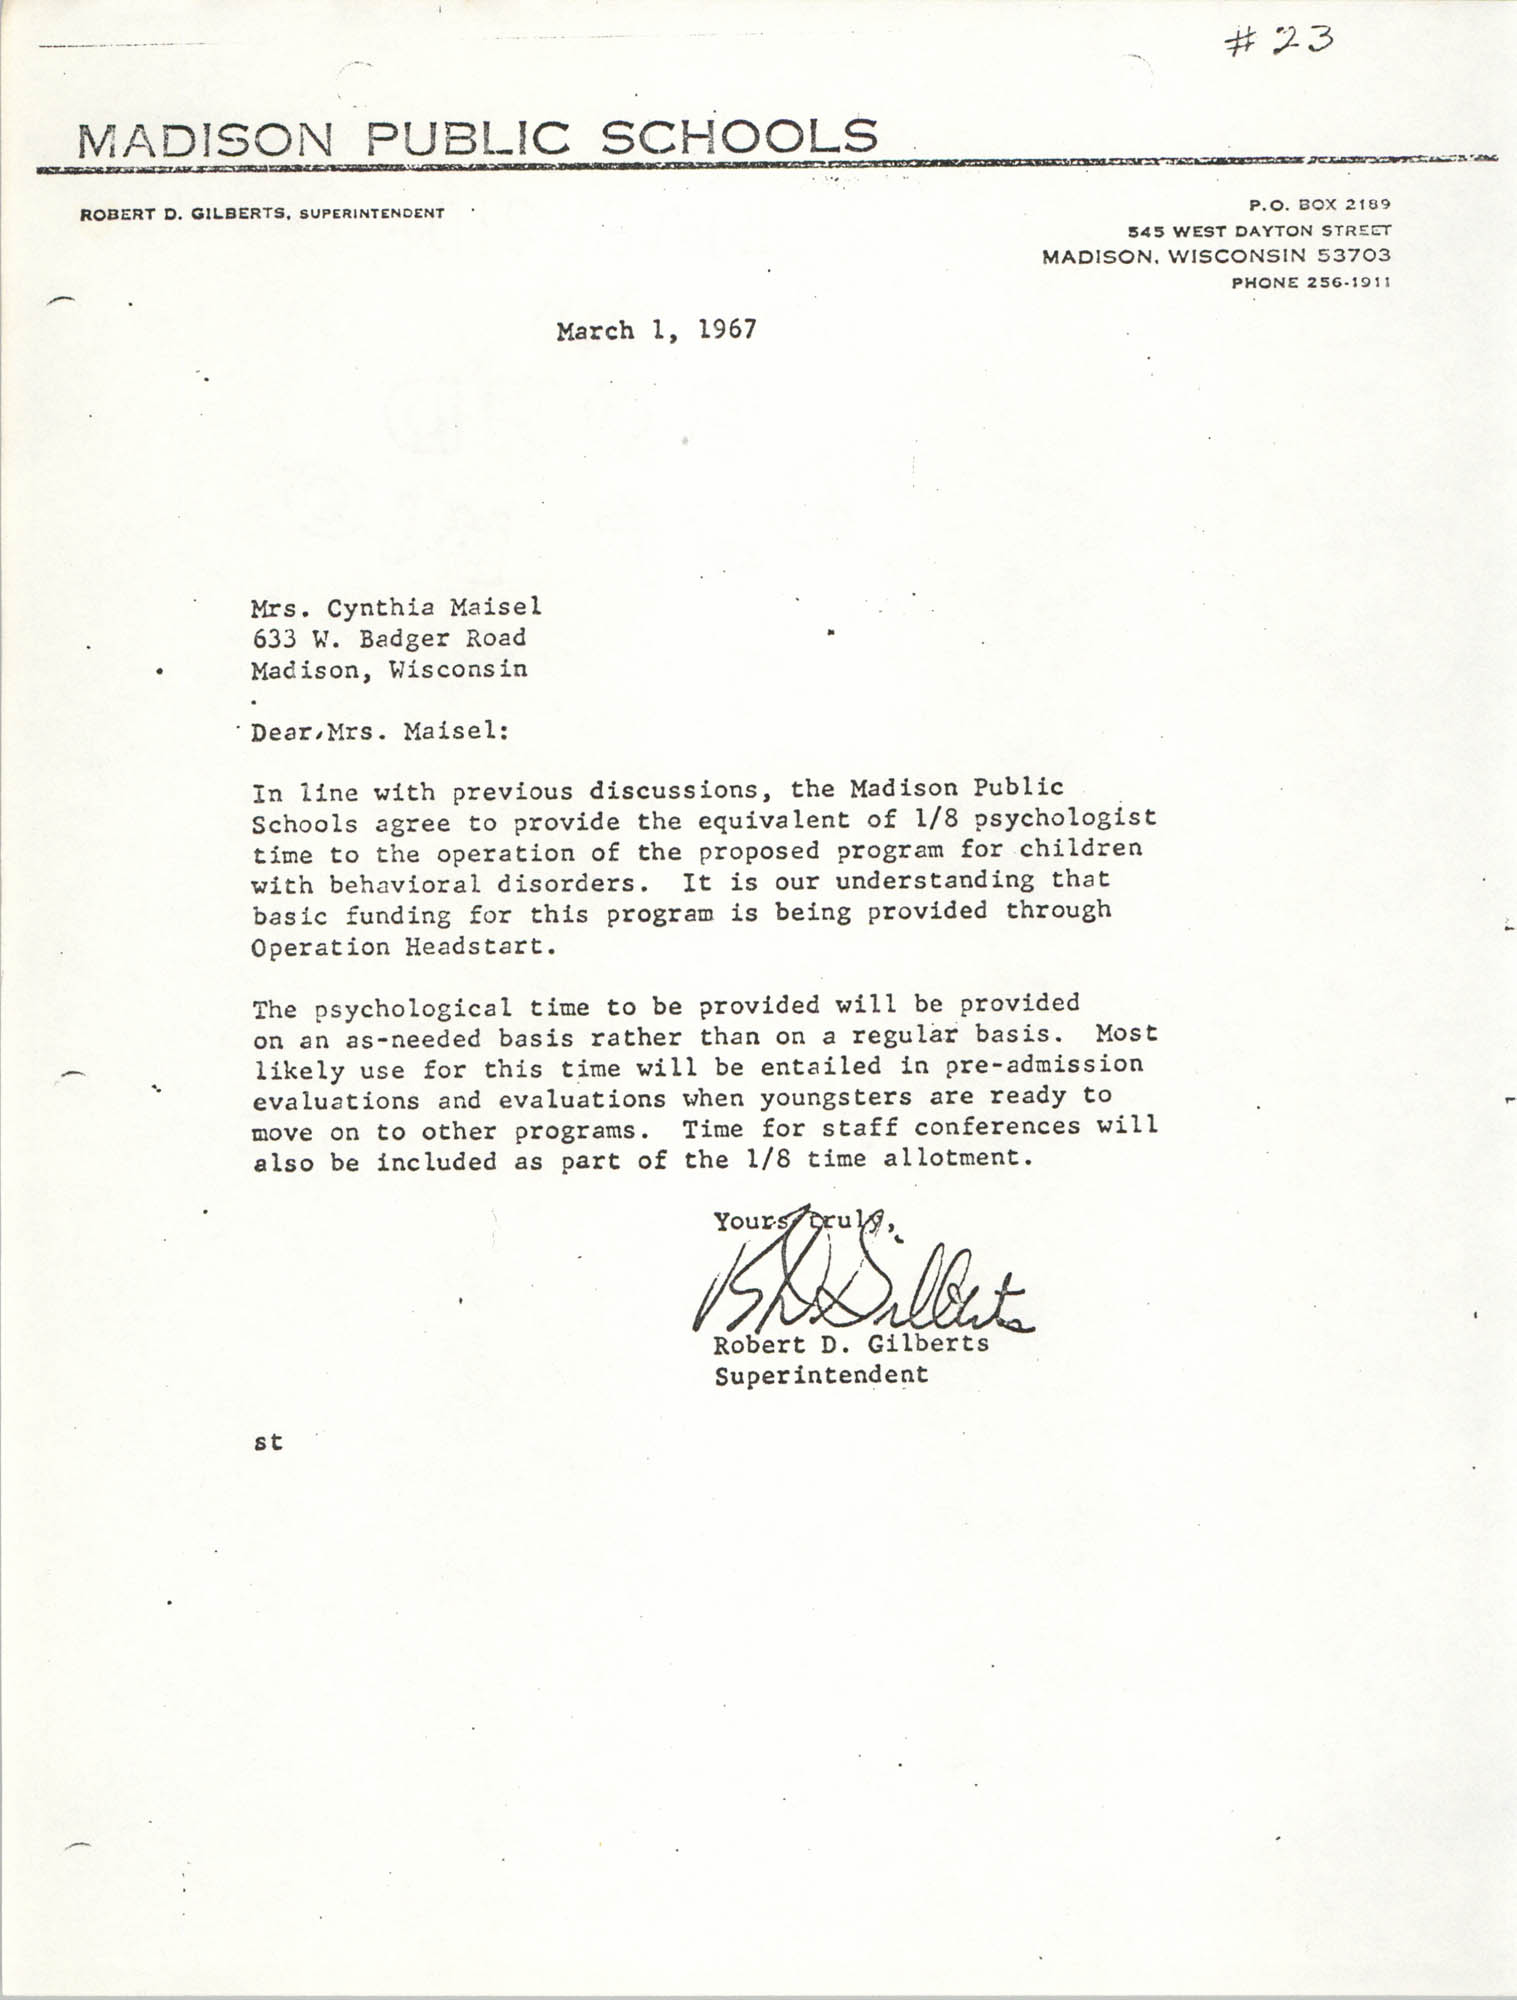 Letter from Robert D. Gilberts to Cynthia Maisel, March 1, 1967